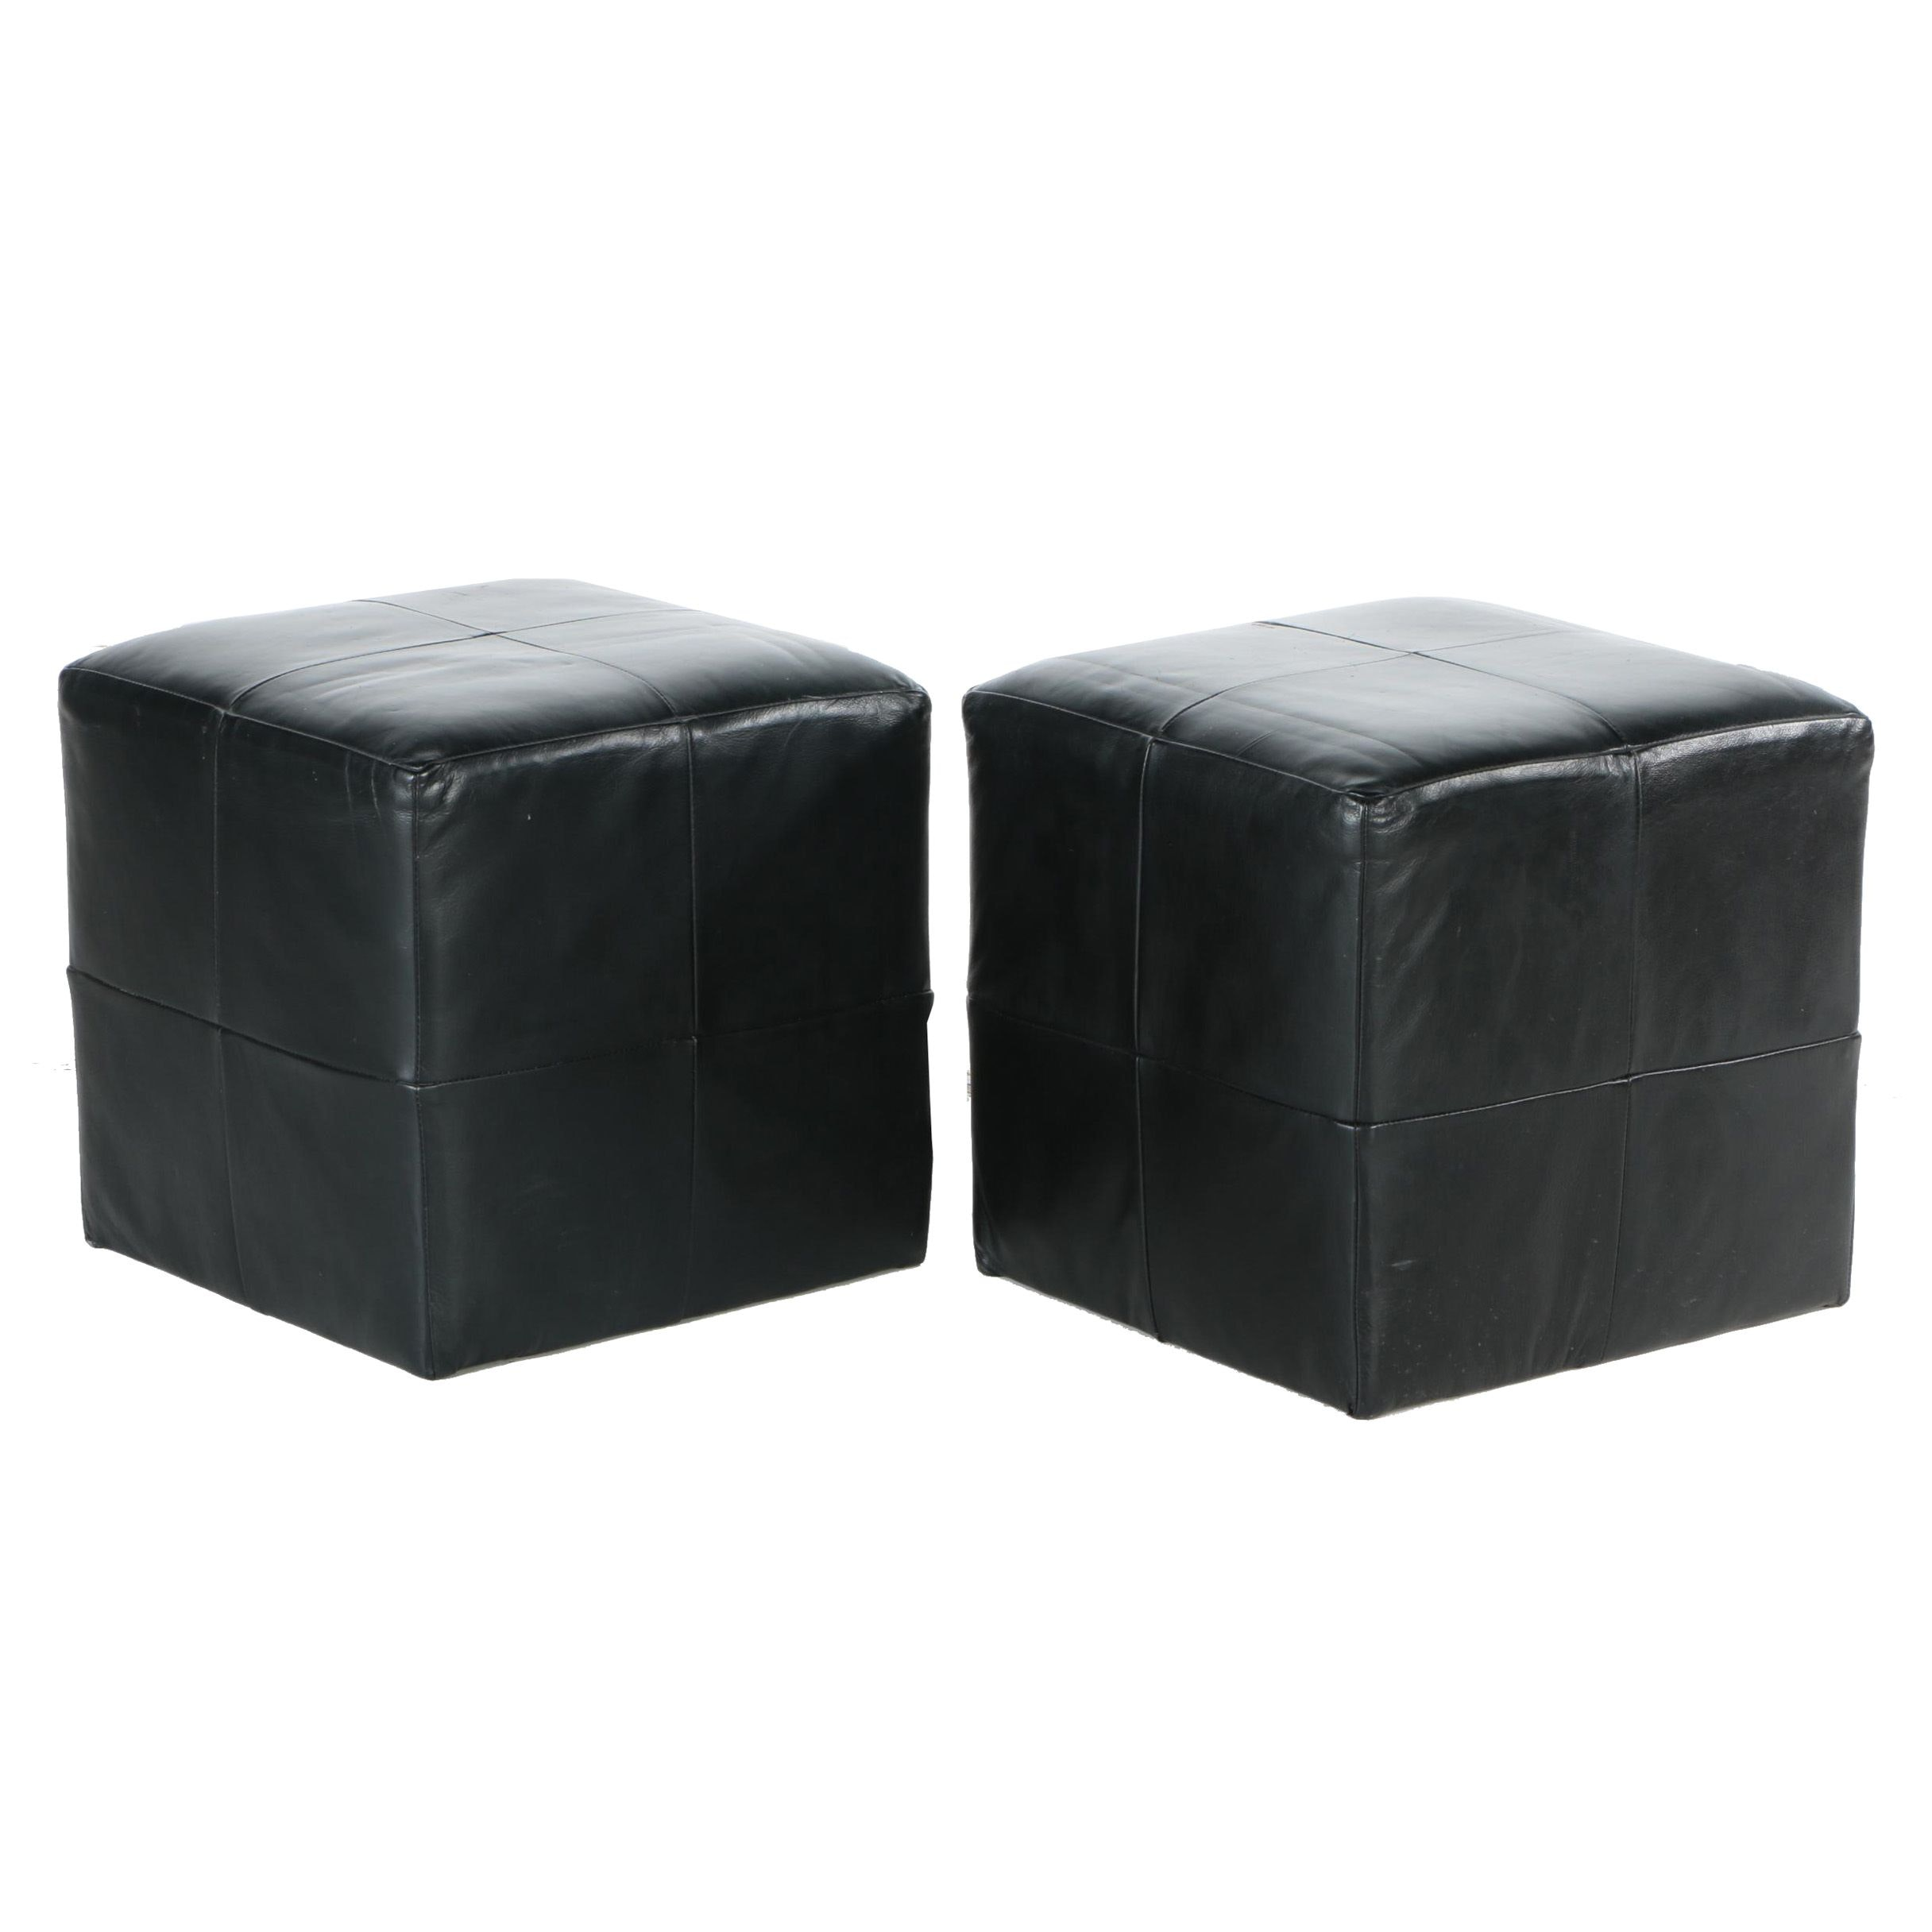 Pair of Cube Ottomans by Restoration Hardware